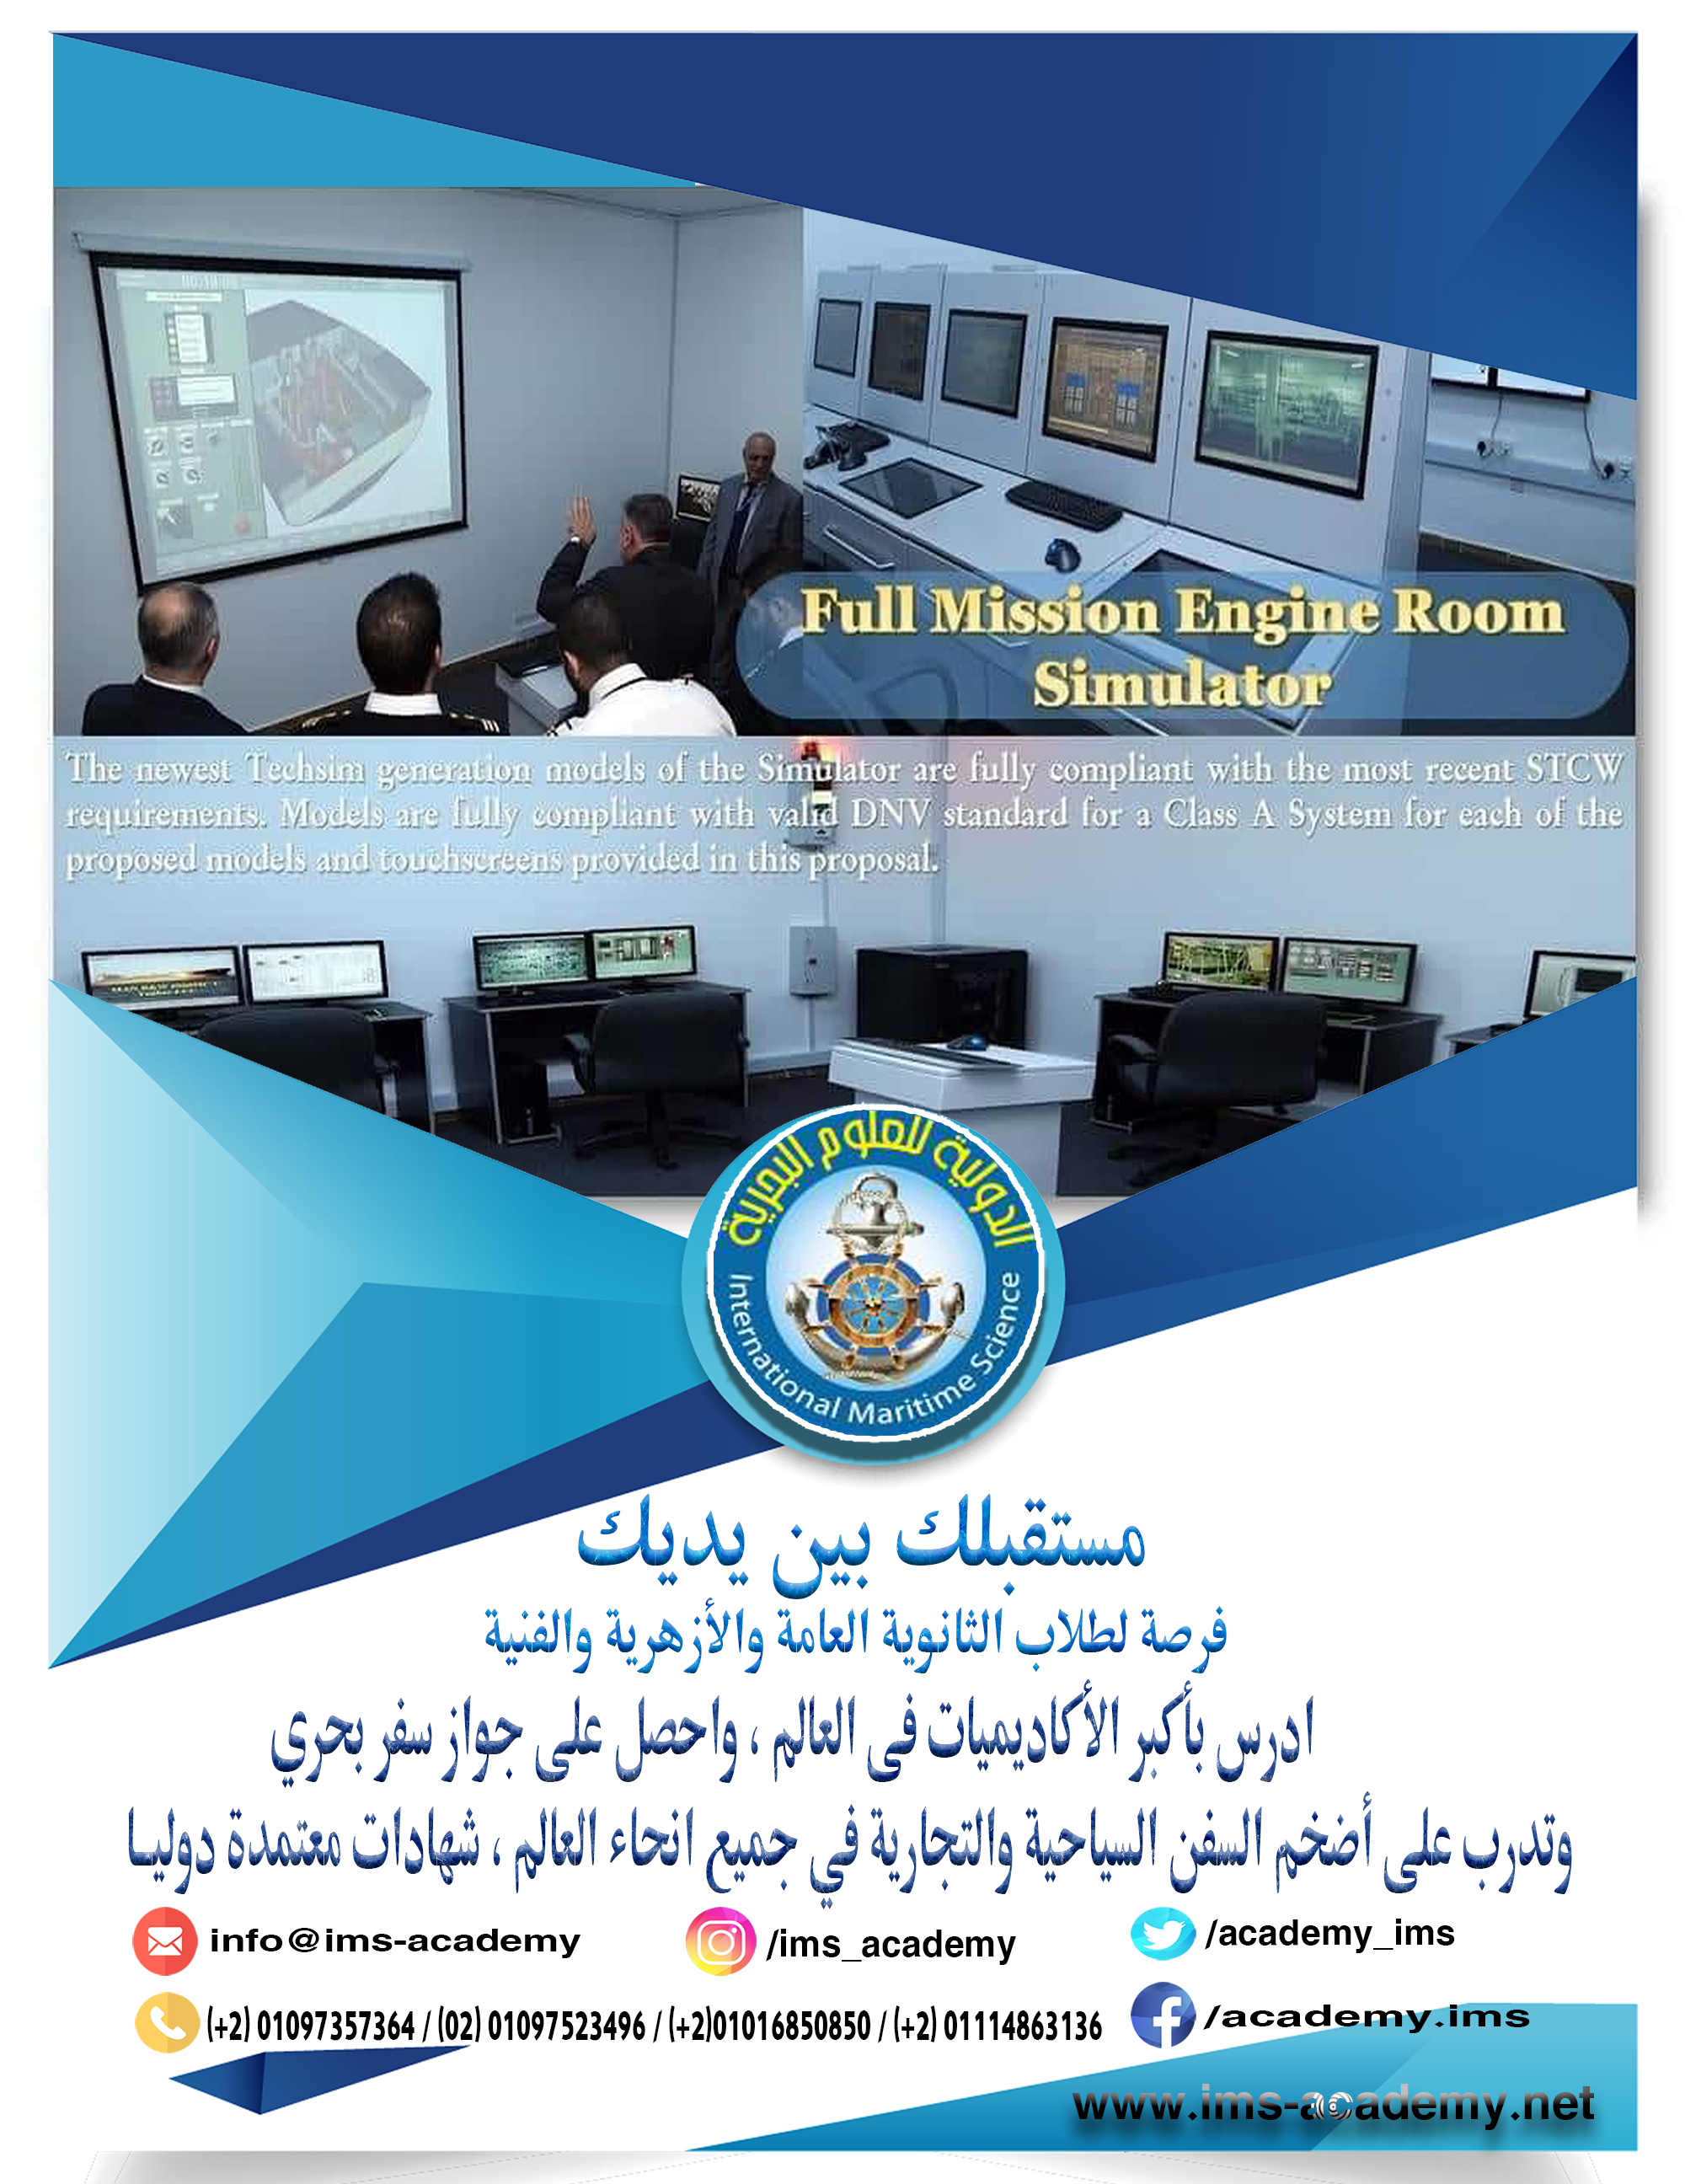 Study In The Most Important Maritime Universities Issue Seaman